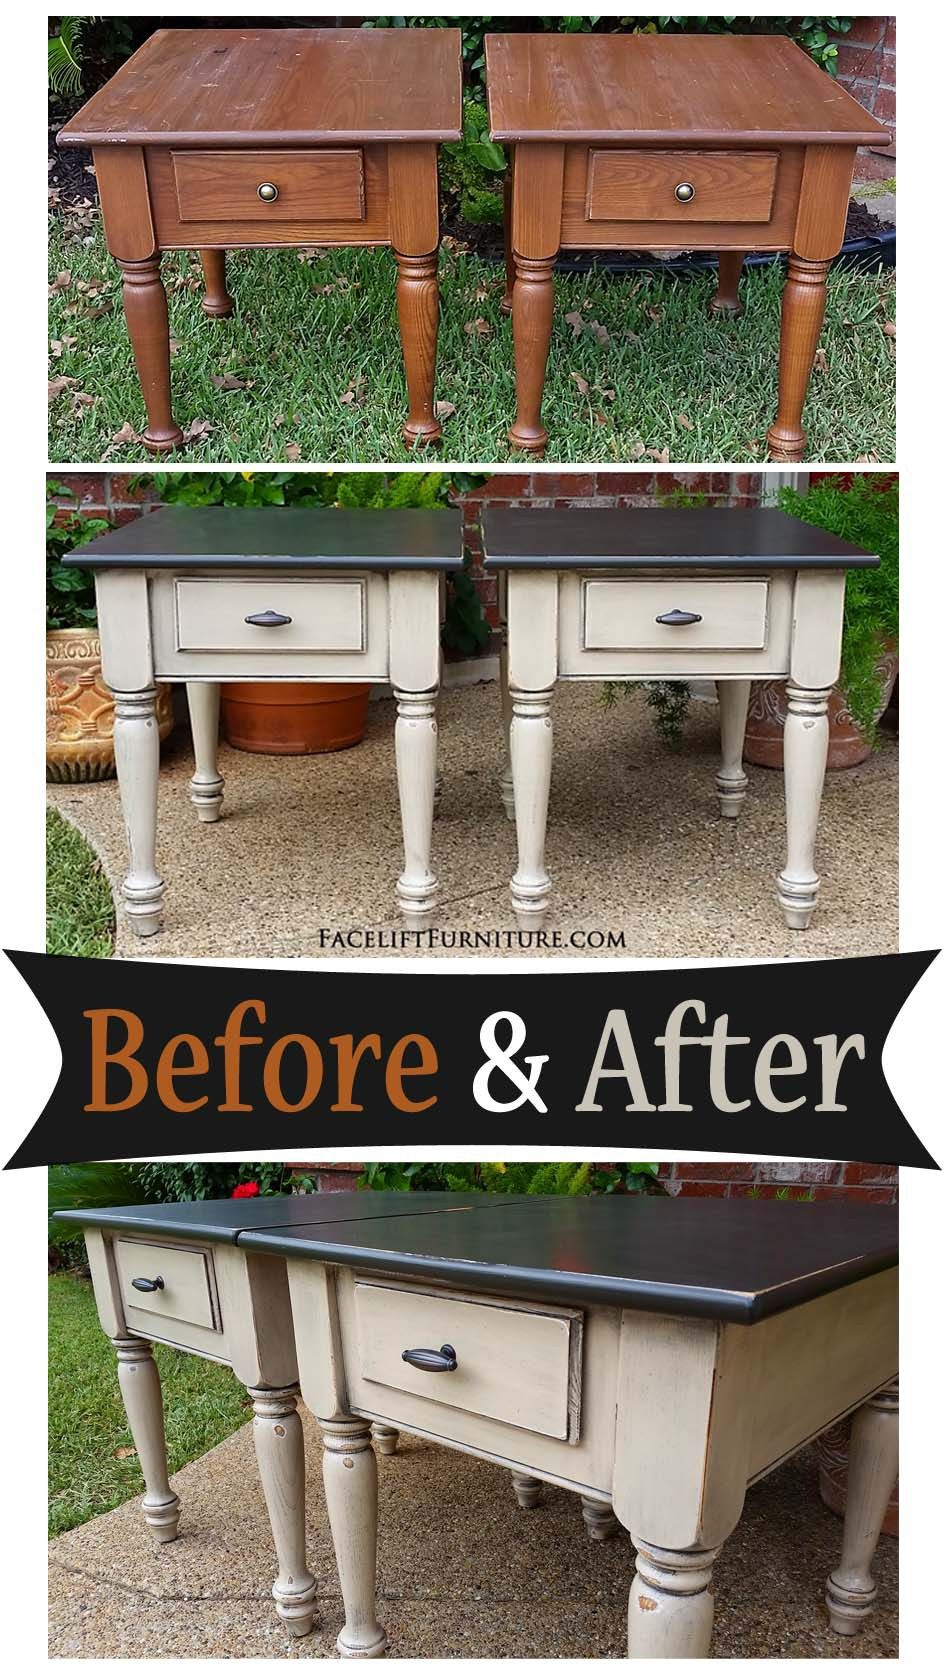 end tables distressed black oatmeal before after diy matching and from facelift furniture big lots coffee metal half moon table stackable plastic patio pipe leg xlarge dog kennel